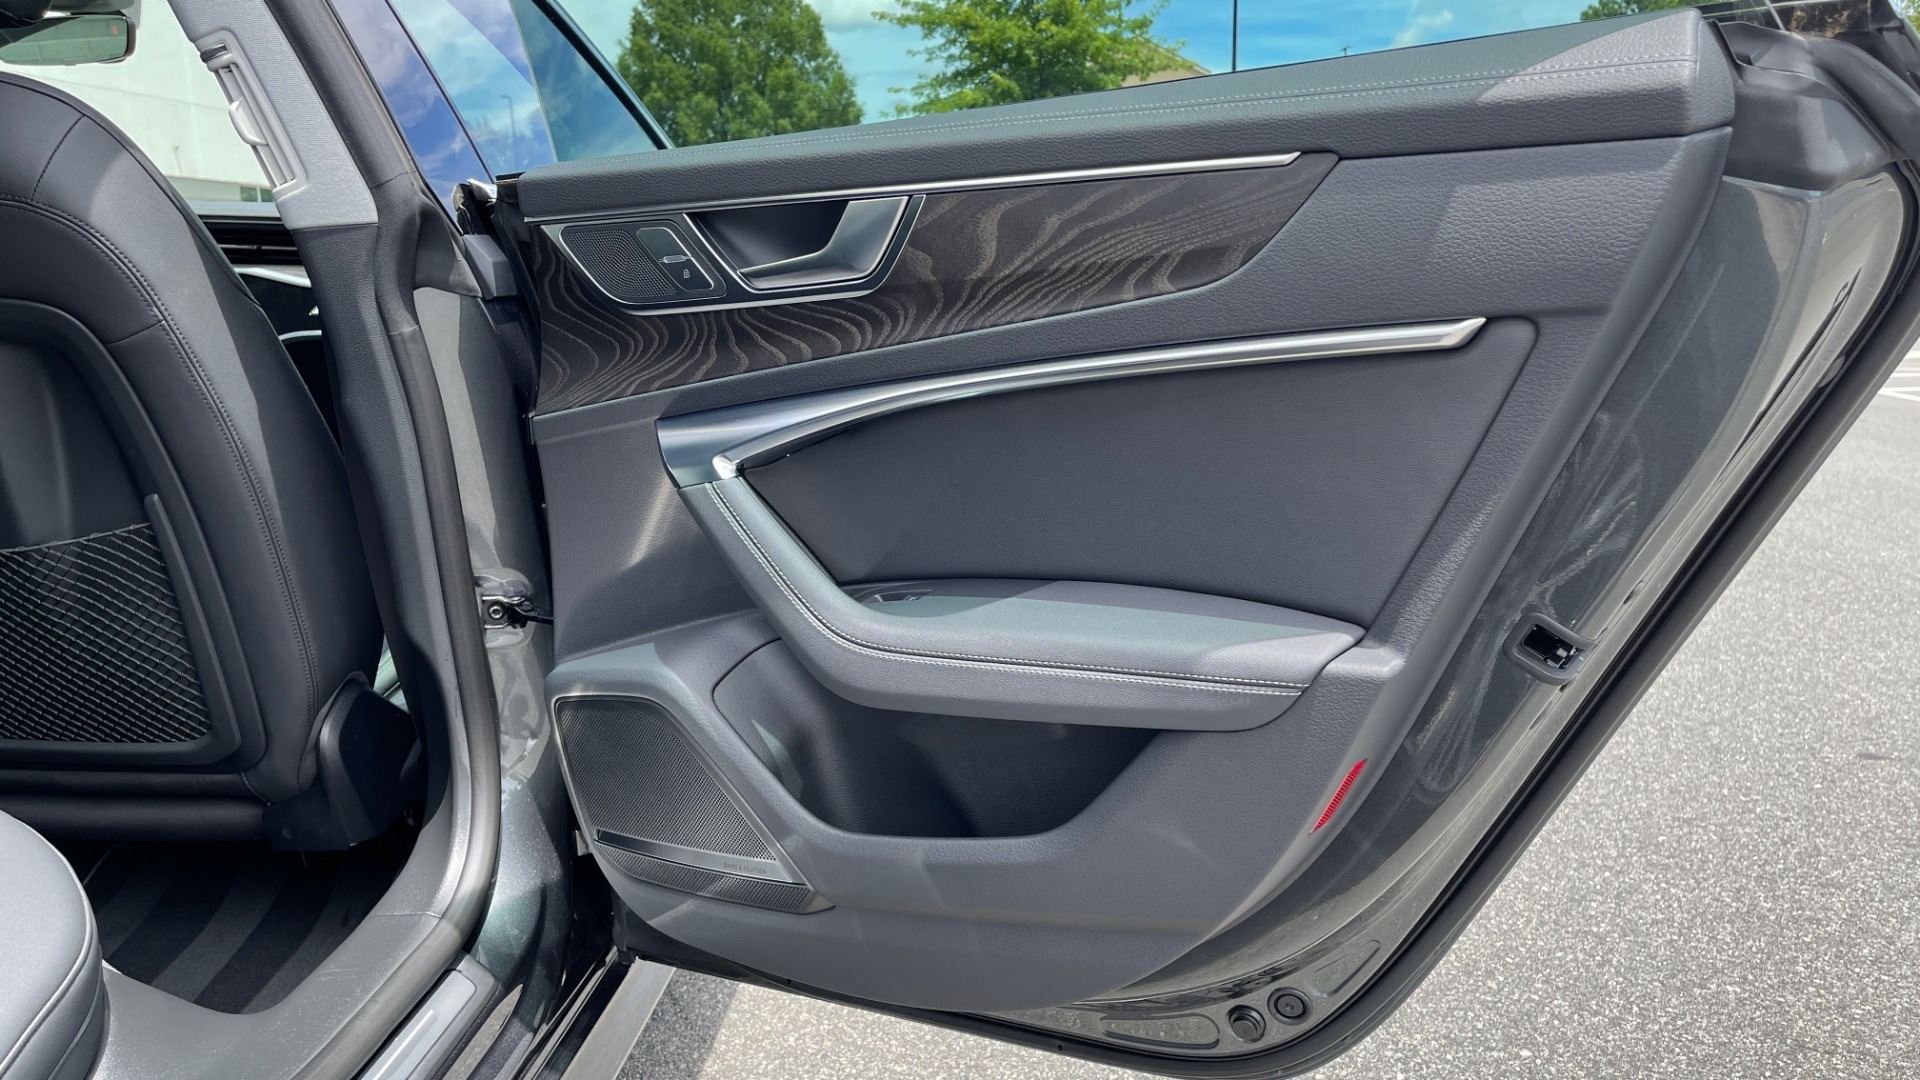 Used 2019 Audi A7 PRESTIGE 55 TFSI 3.0T / NAV / B&O SND / SUNROOF / S-LINE / 21IN WHLS / REAR for sale $66,995 at Formula Imports in Charlotte NC 28227 71